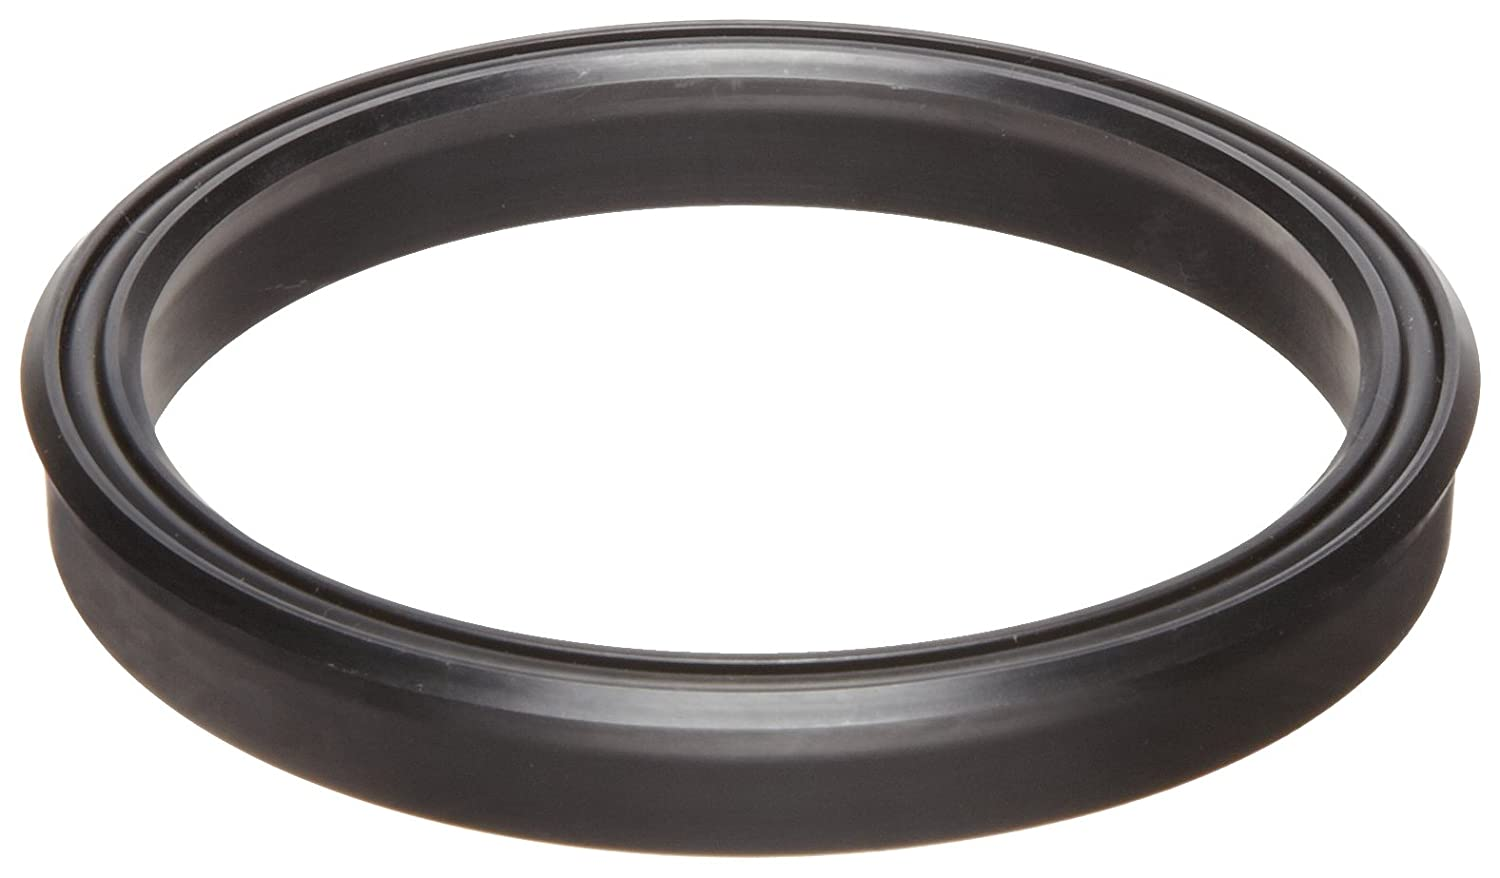 Lip Seal, Rectangular Profile, Buna-N O-Ring Loaded, Urethane, 1/8